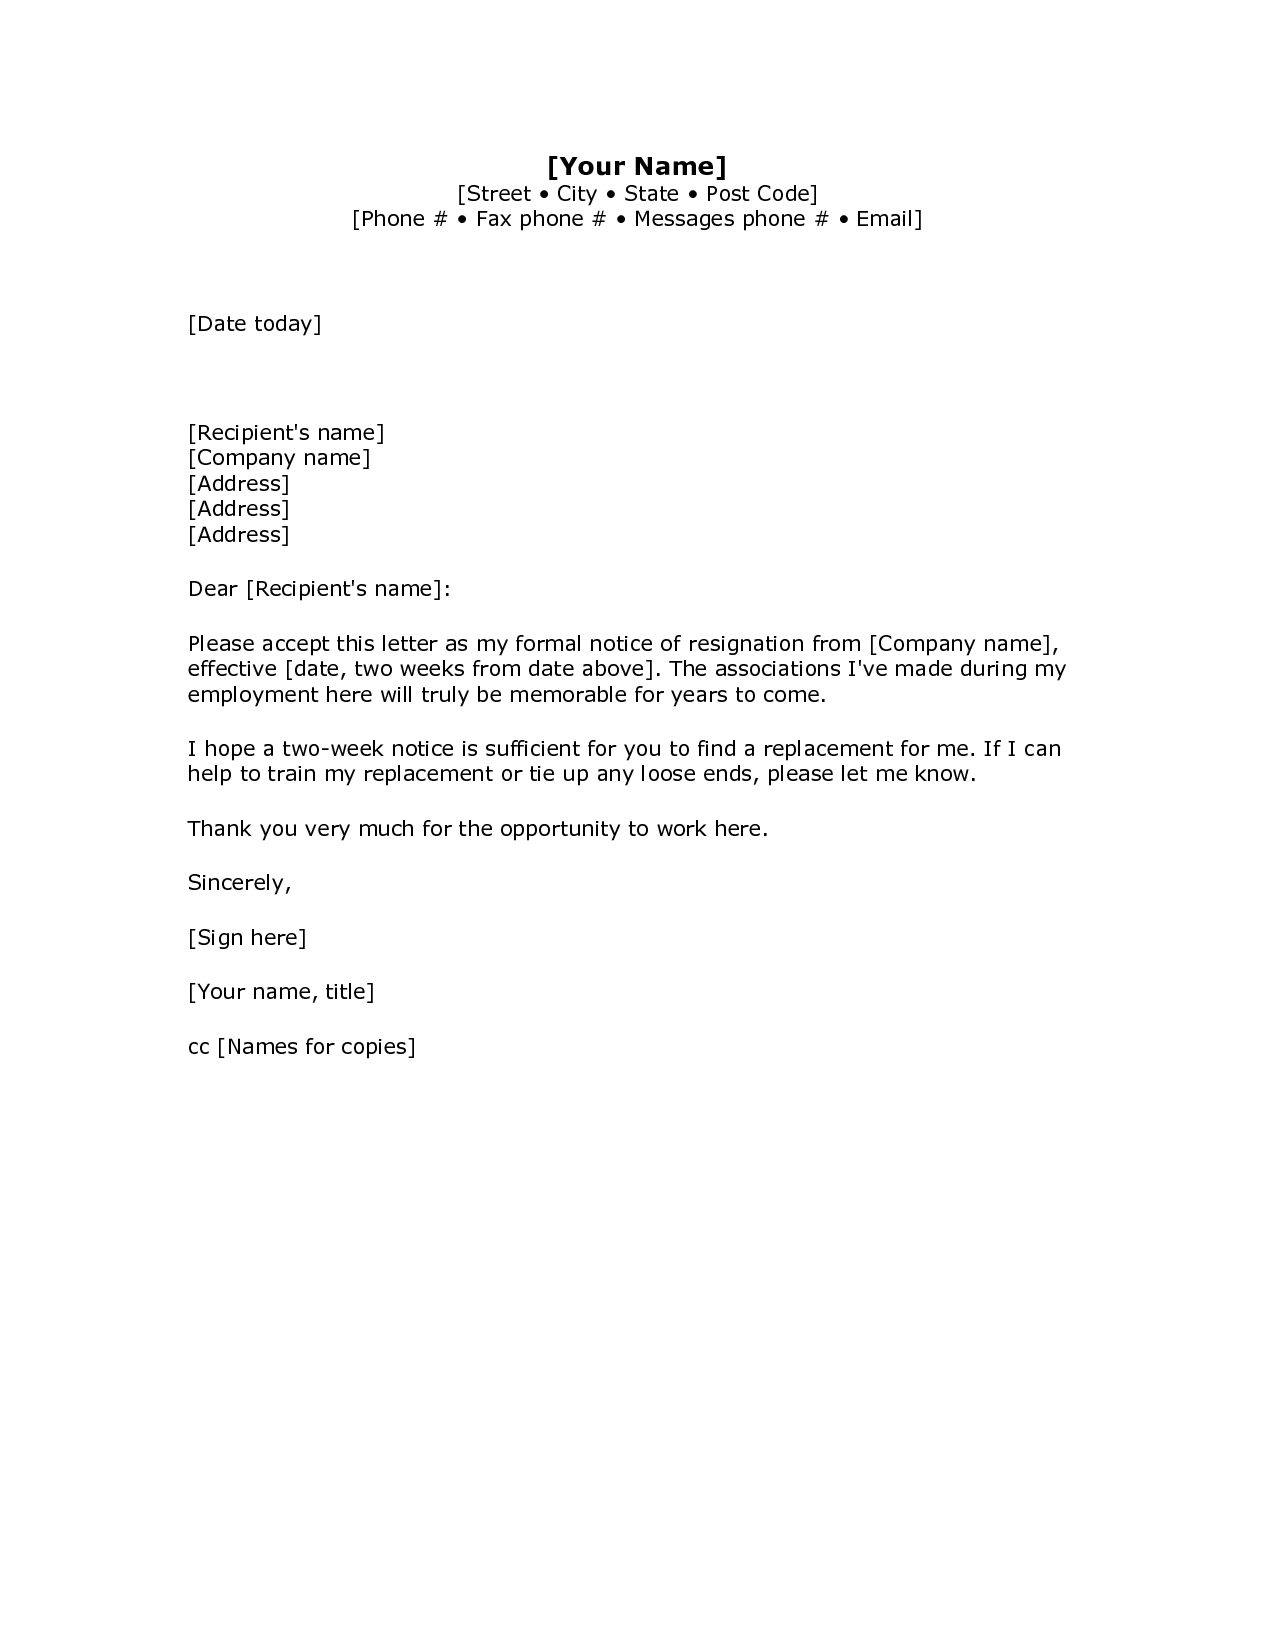 How to write a letter of resignation for retirement akba greenw co retirement letter to employer template samples letter cover templates 2 weeks notice letter resignation letter week expocarfo Gallery